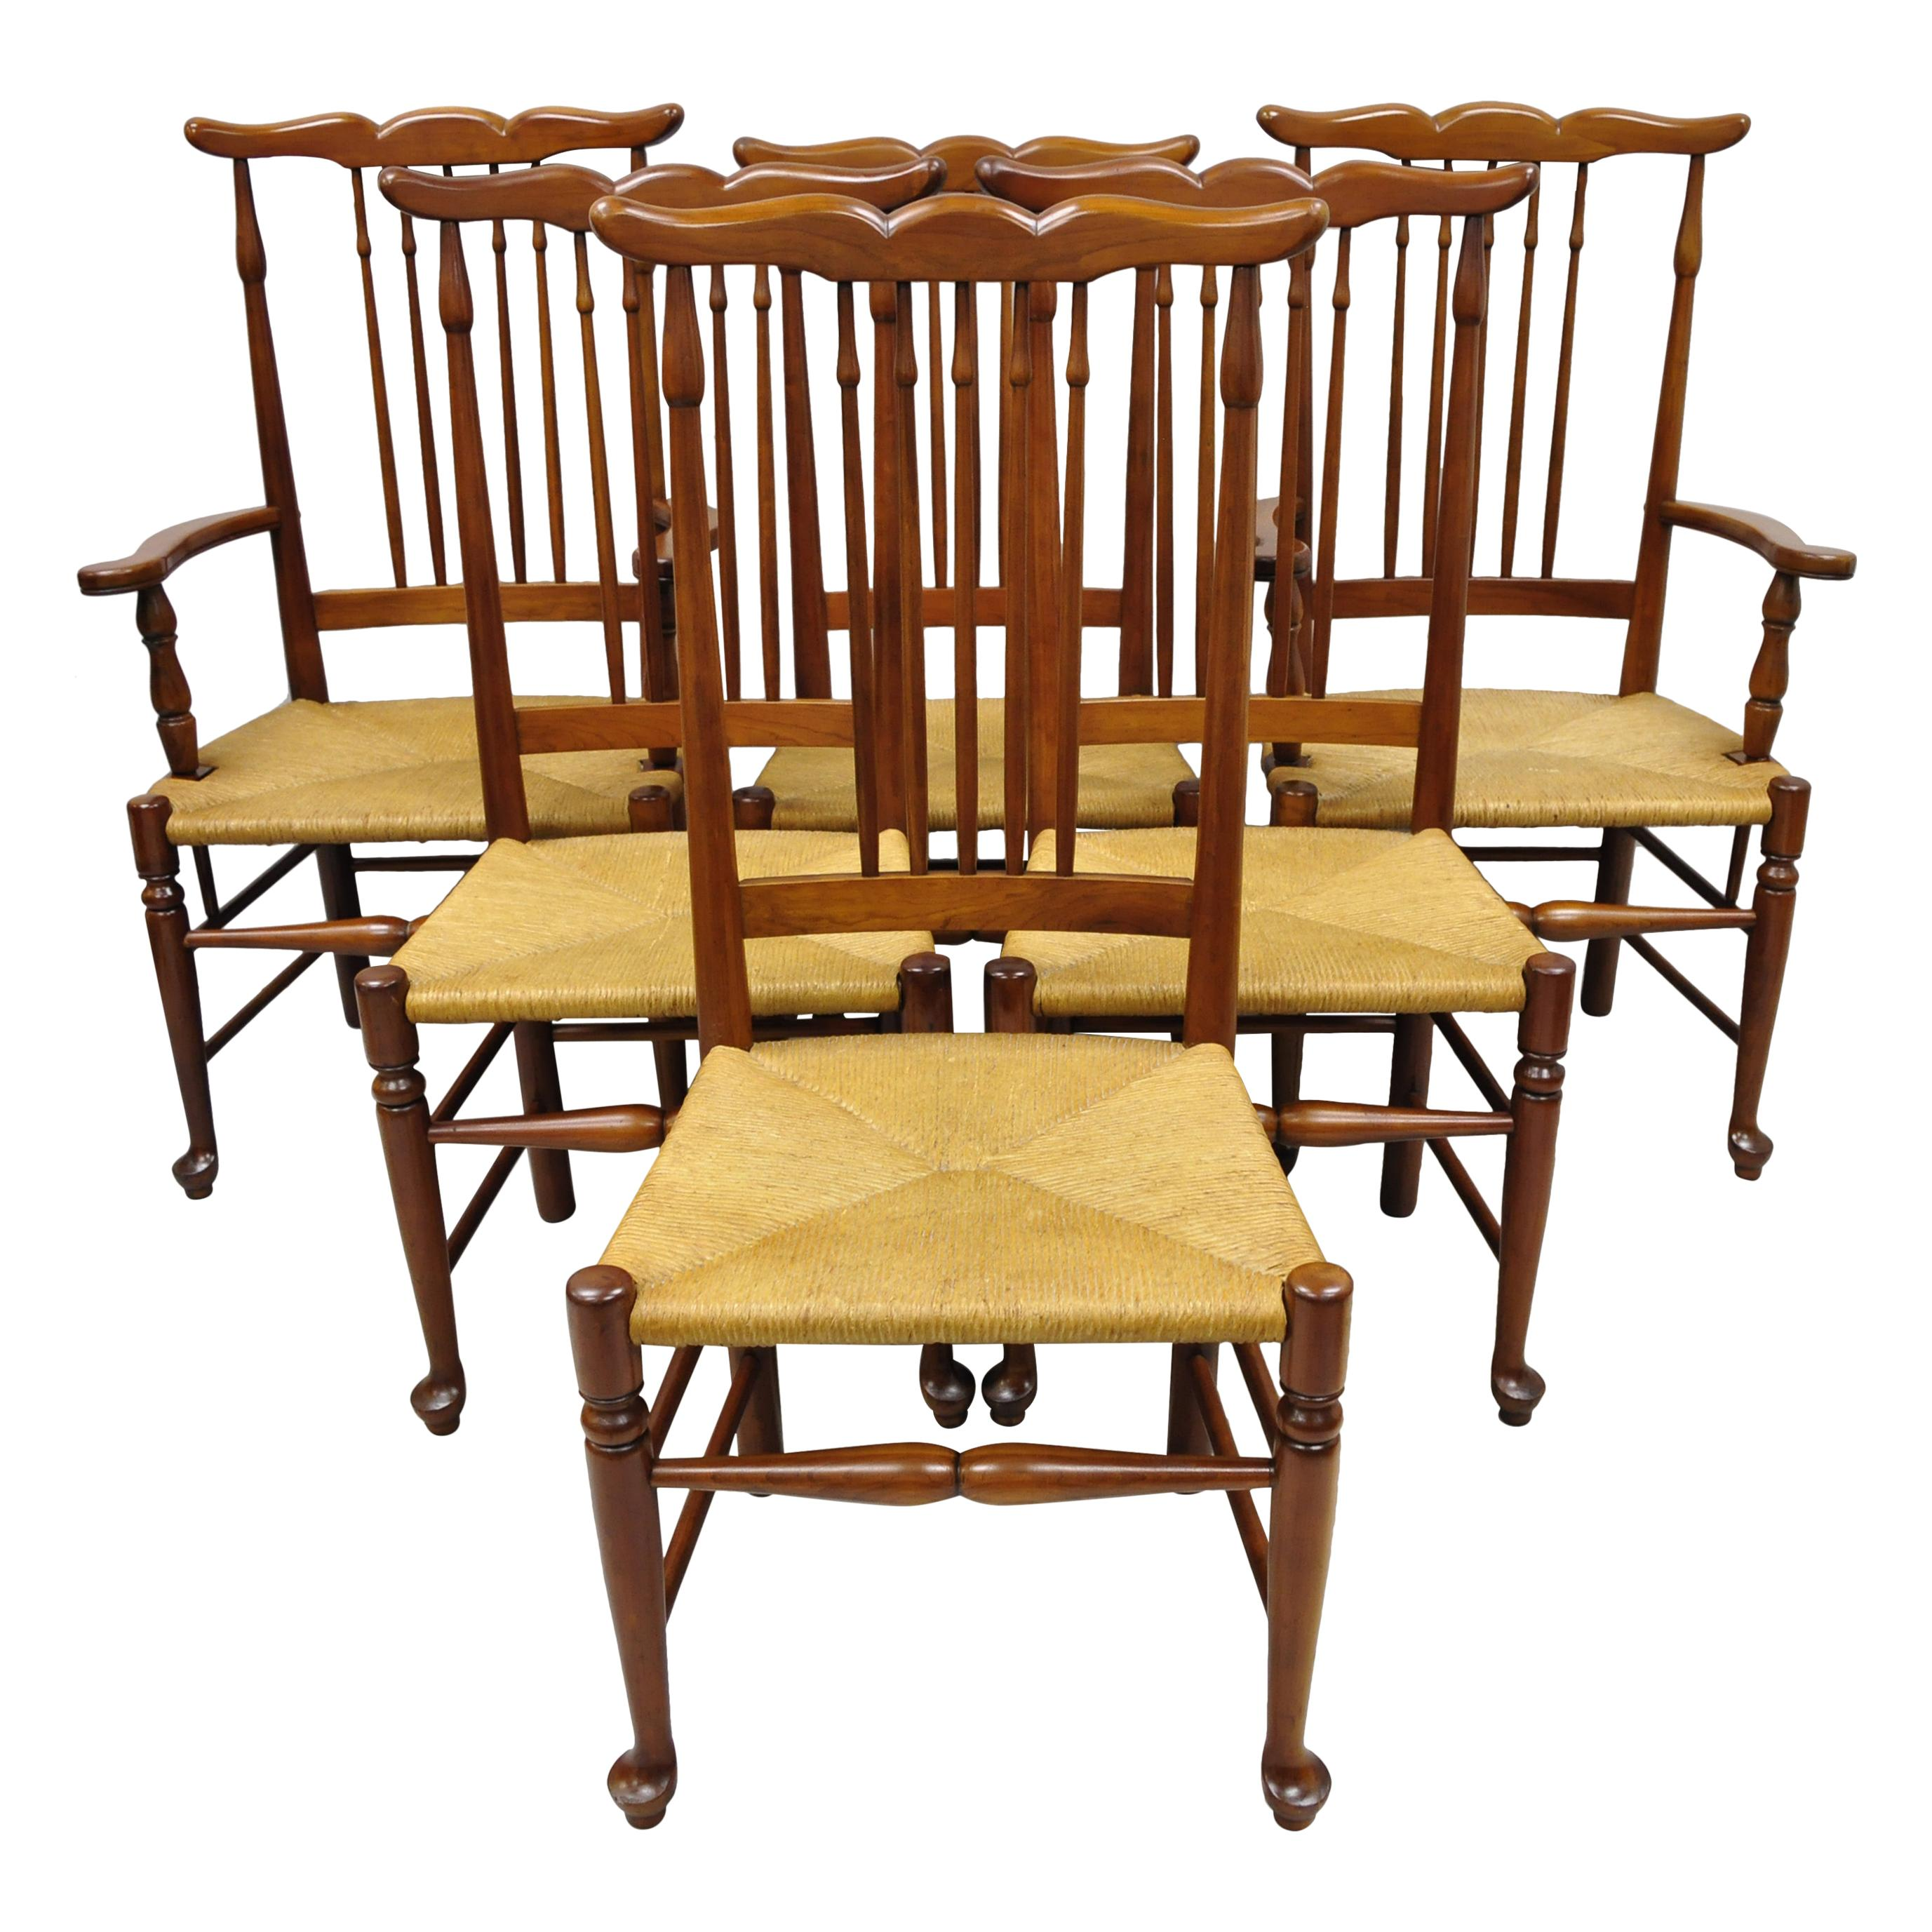 6 Vintage Spindle Back Cherrywood Rush Seat Queen Anne Colonial Dining Chairs